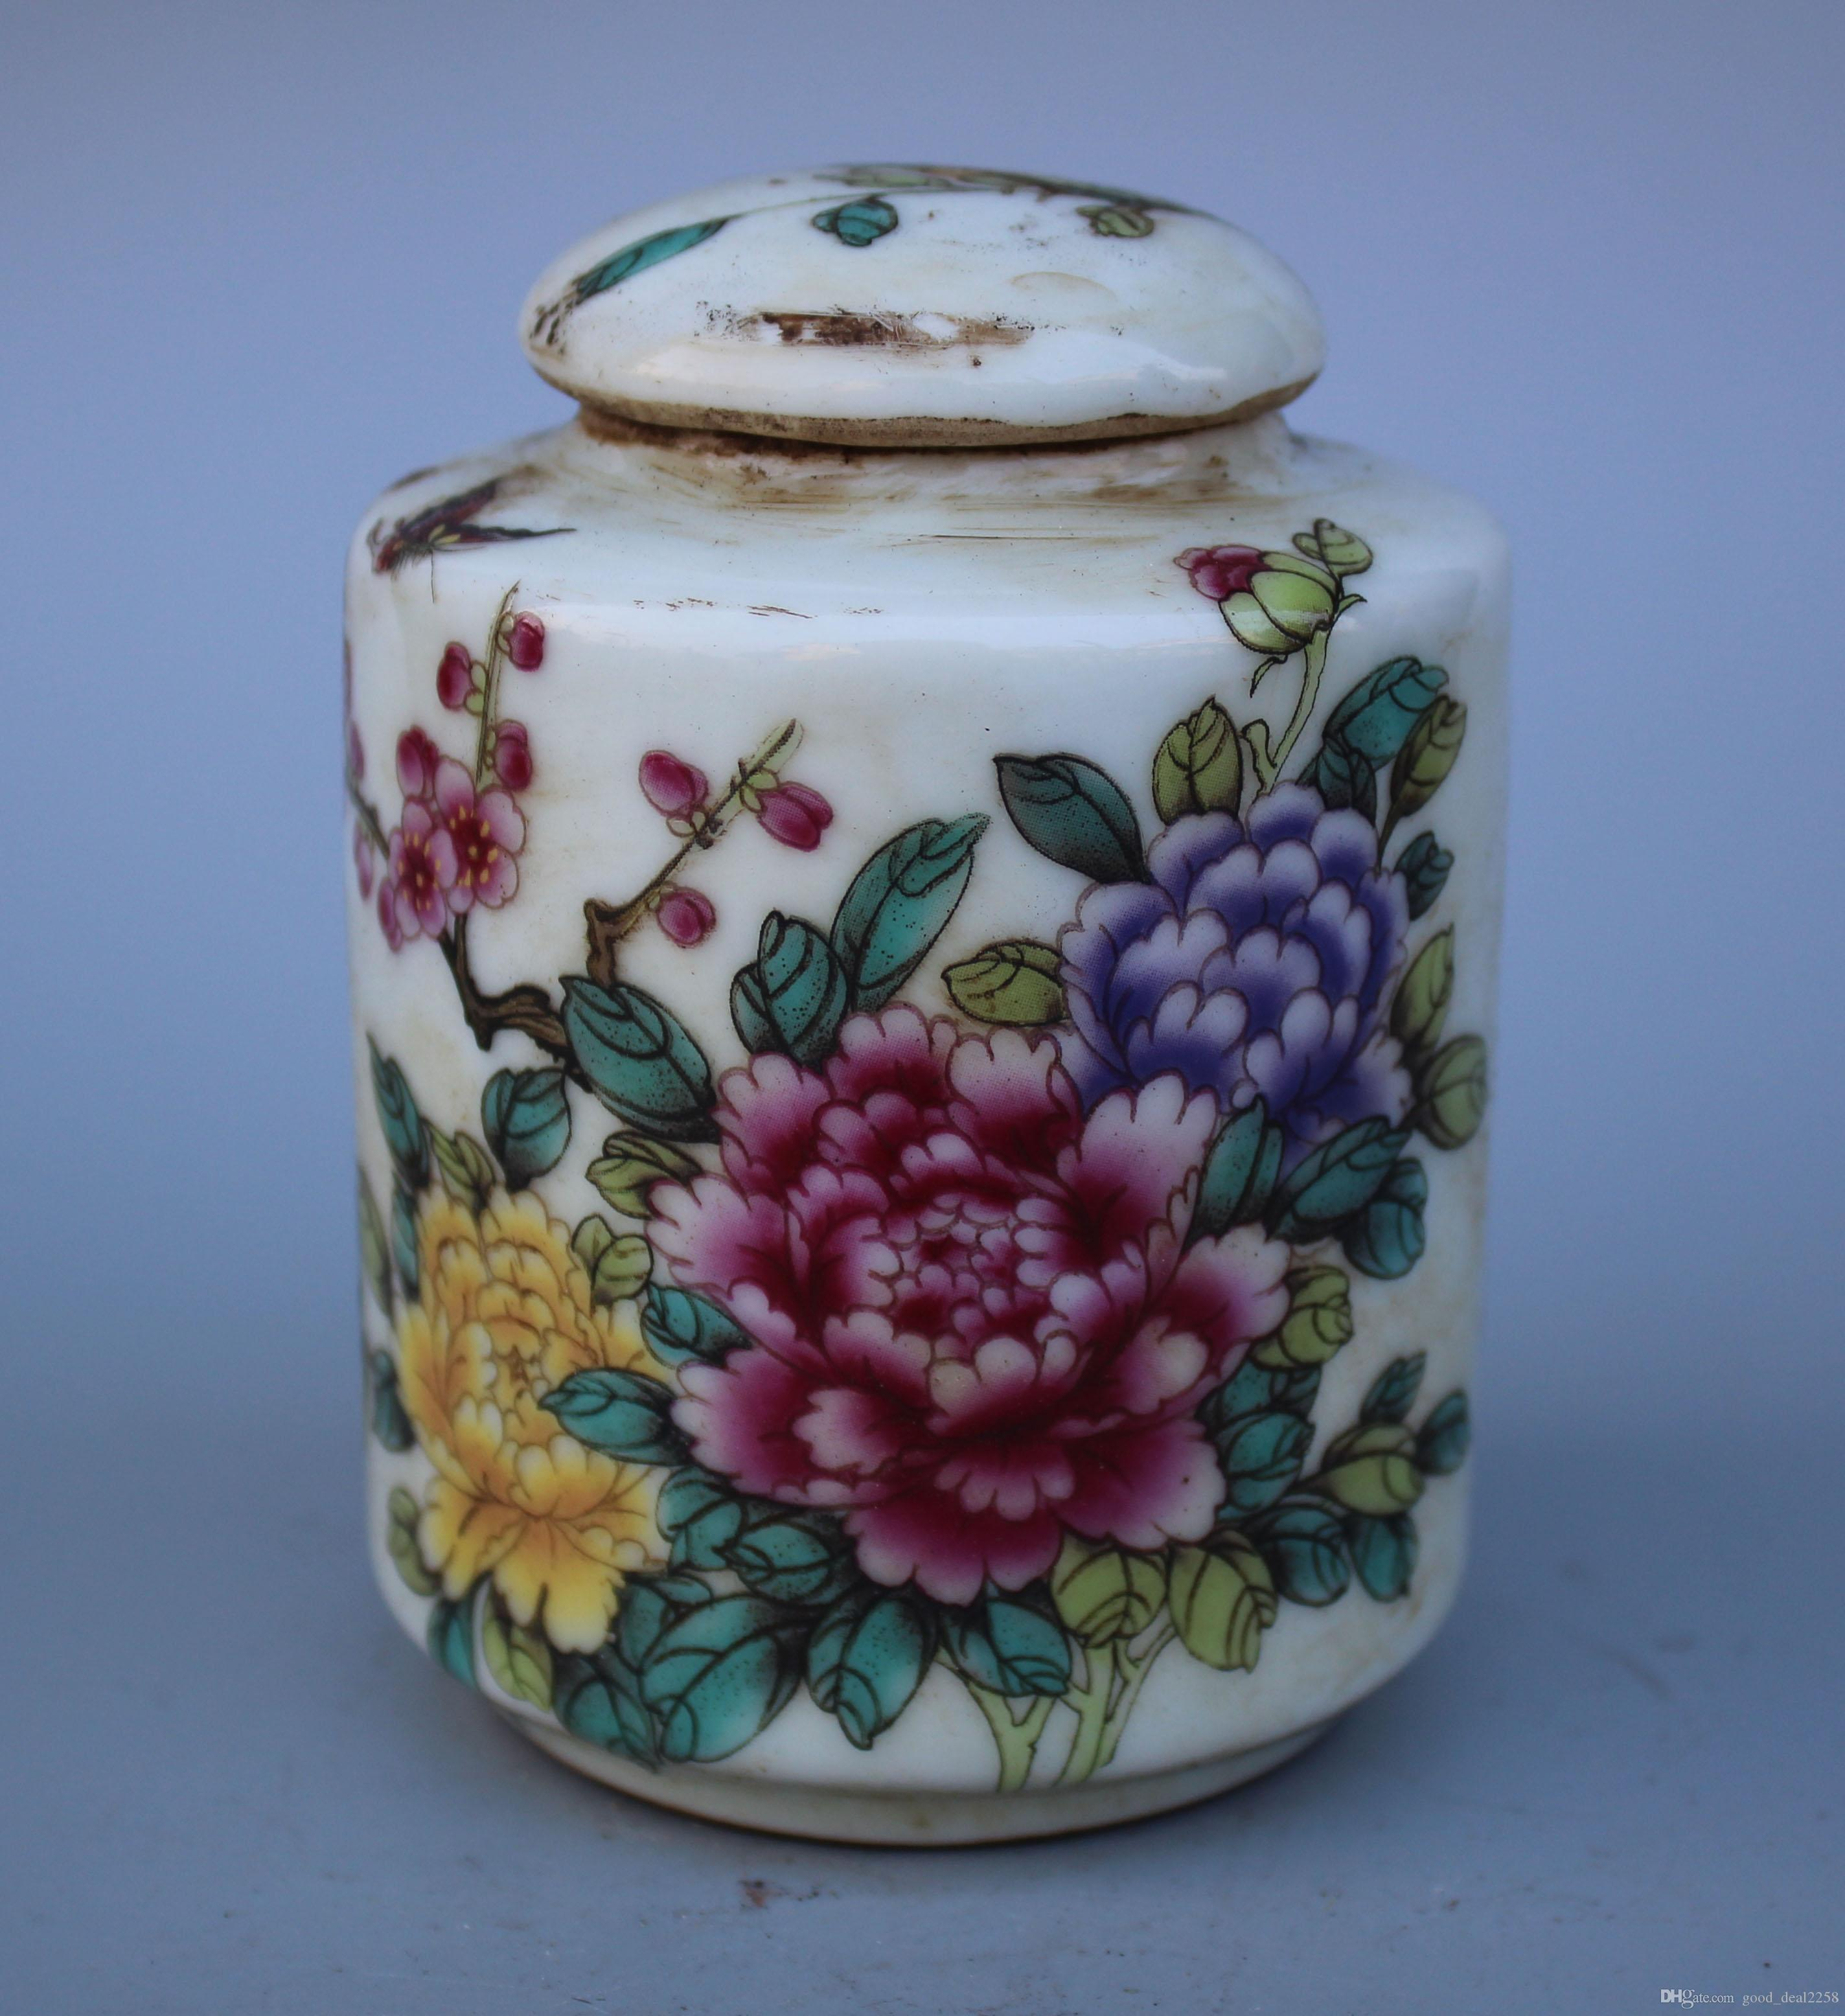 Rare porcellana cinese Handwork painting flower butterfly Old pot - Spring full garden Tè caddy